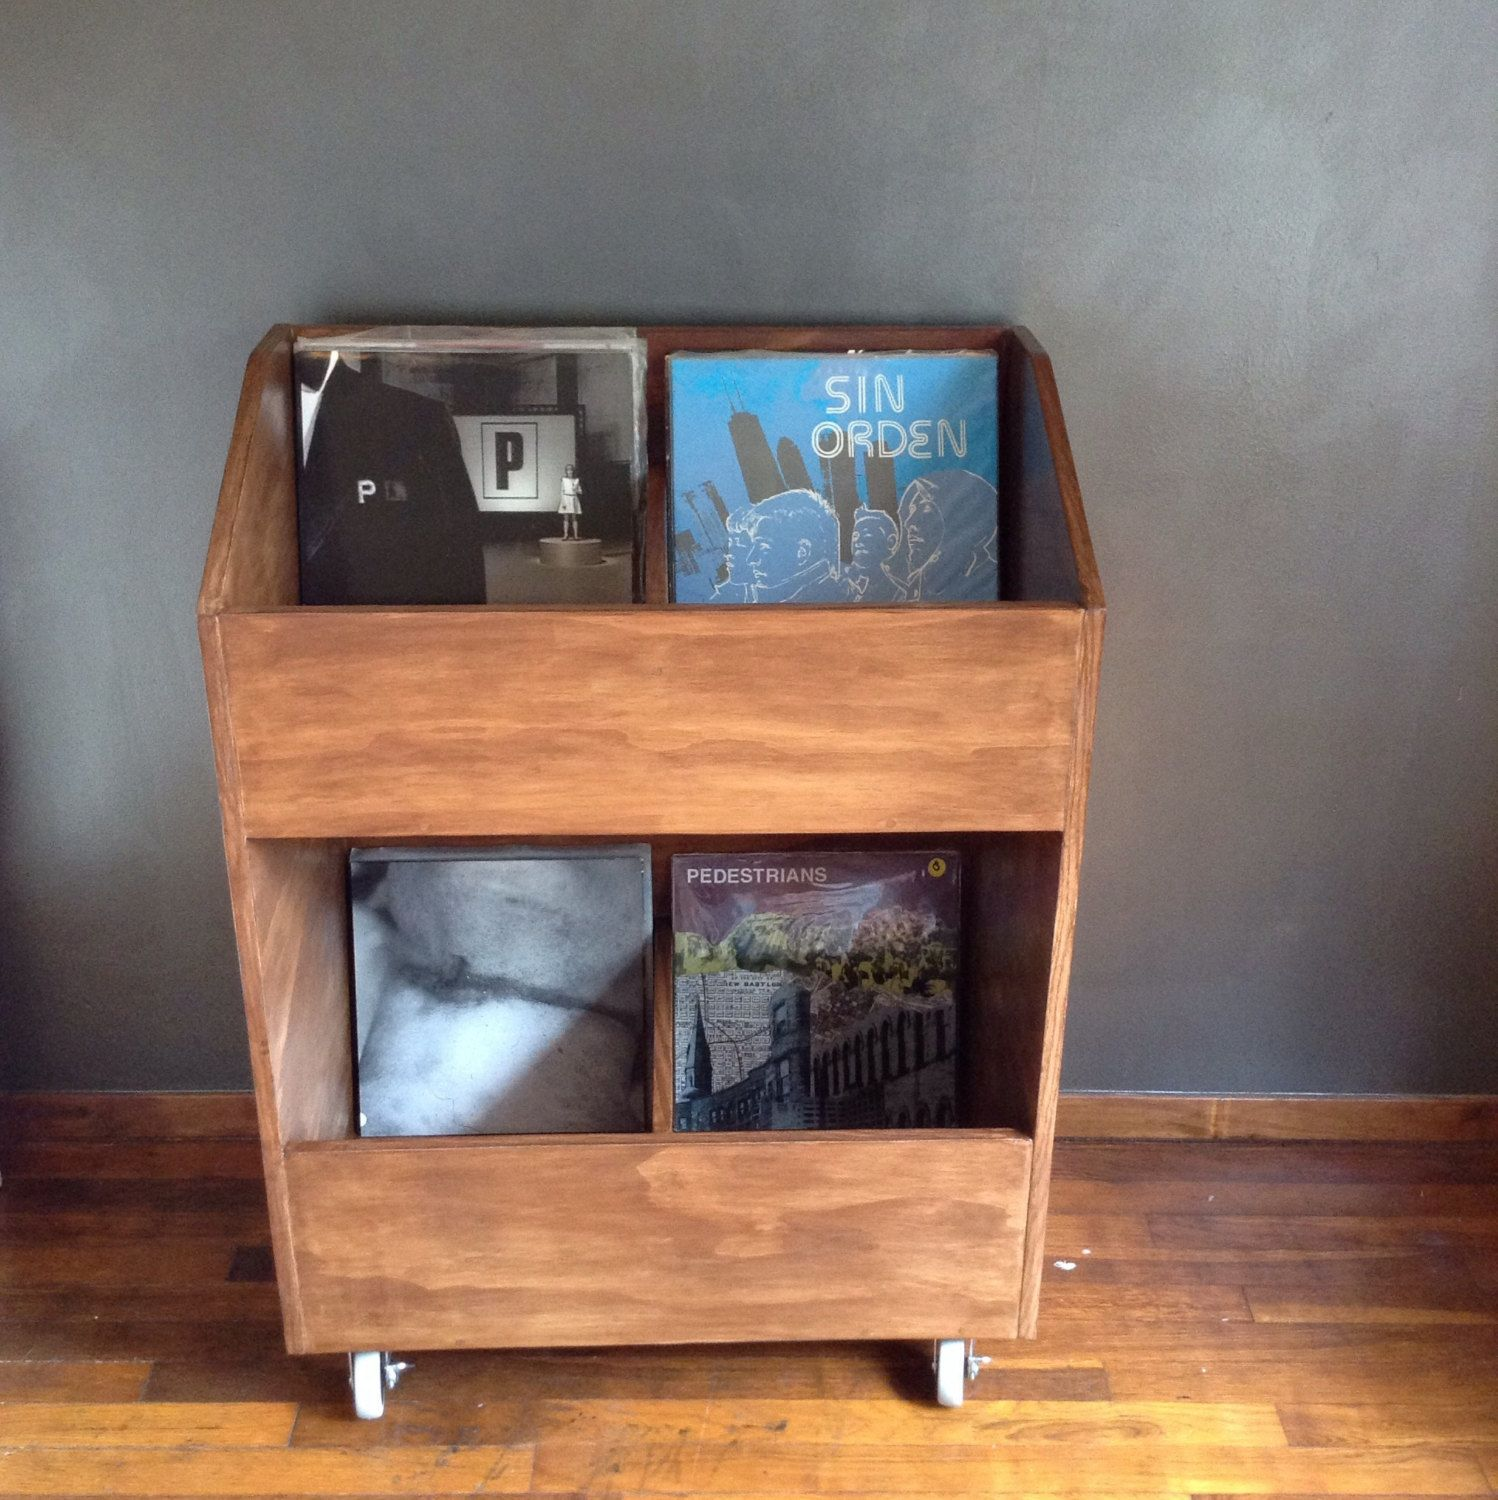 Lp Vinyl Record Storage Shelf 500 Capacity Record Store Style Vinyl Record Storage Shelf Vinyl Record Storage Record Storage